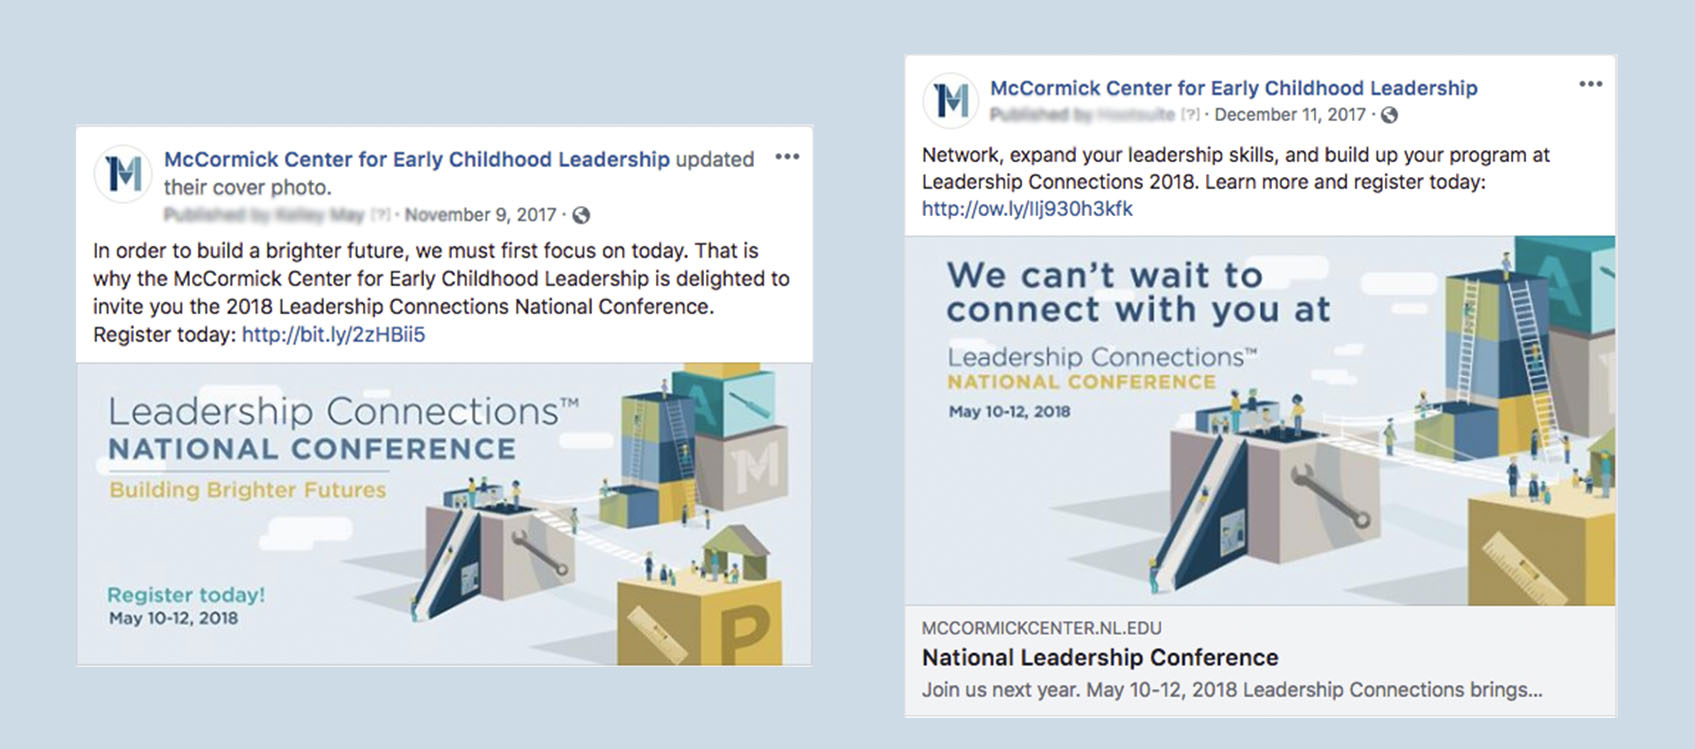 General Facebook posts promoting the conference.